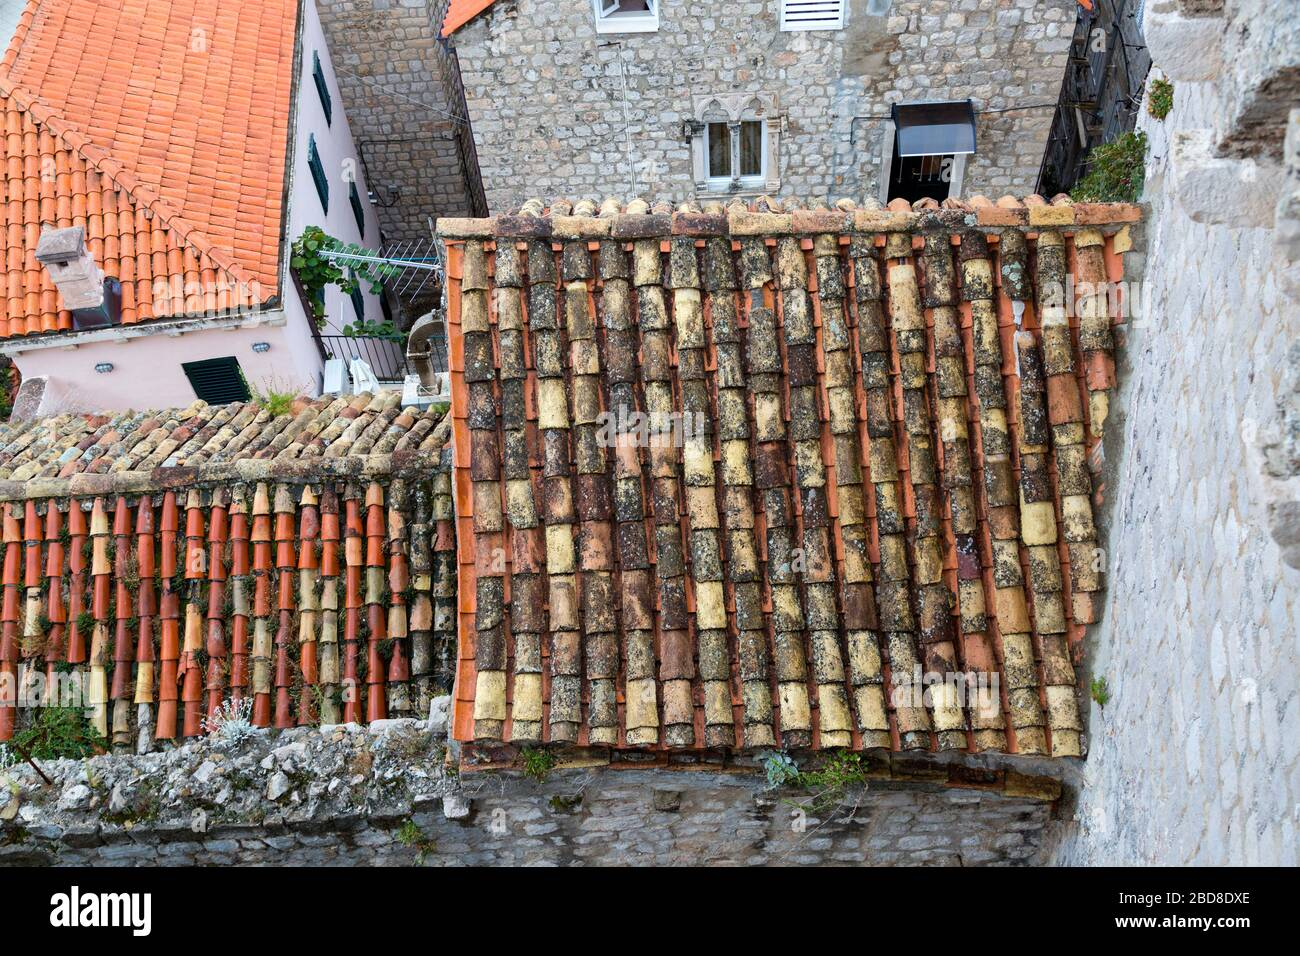 https www alamy com close up view from above of the rustic terra cotta roof tile in old town dubrovnik croatia image352384438 html